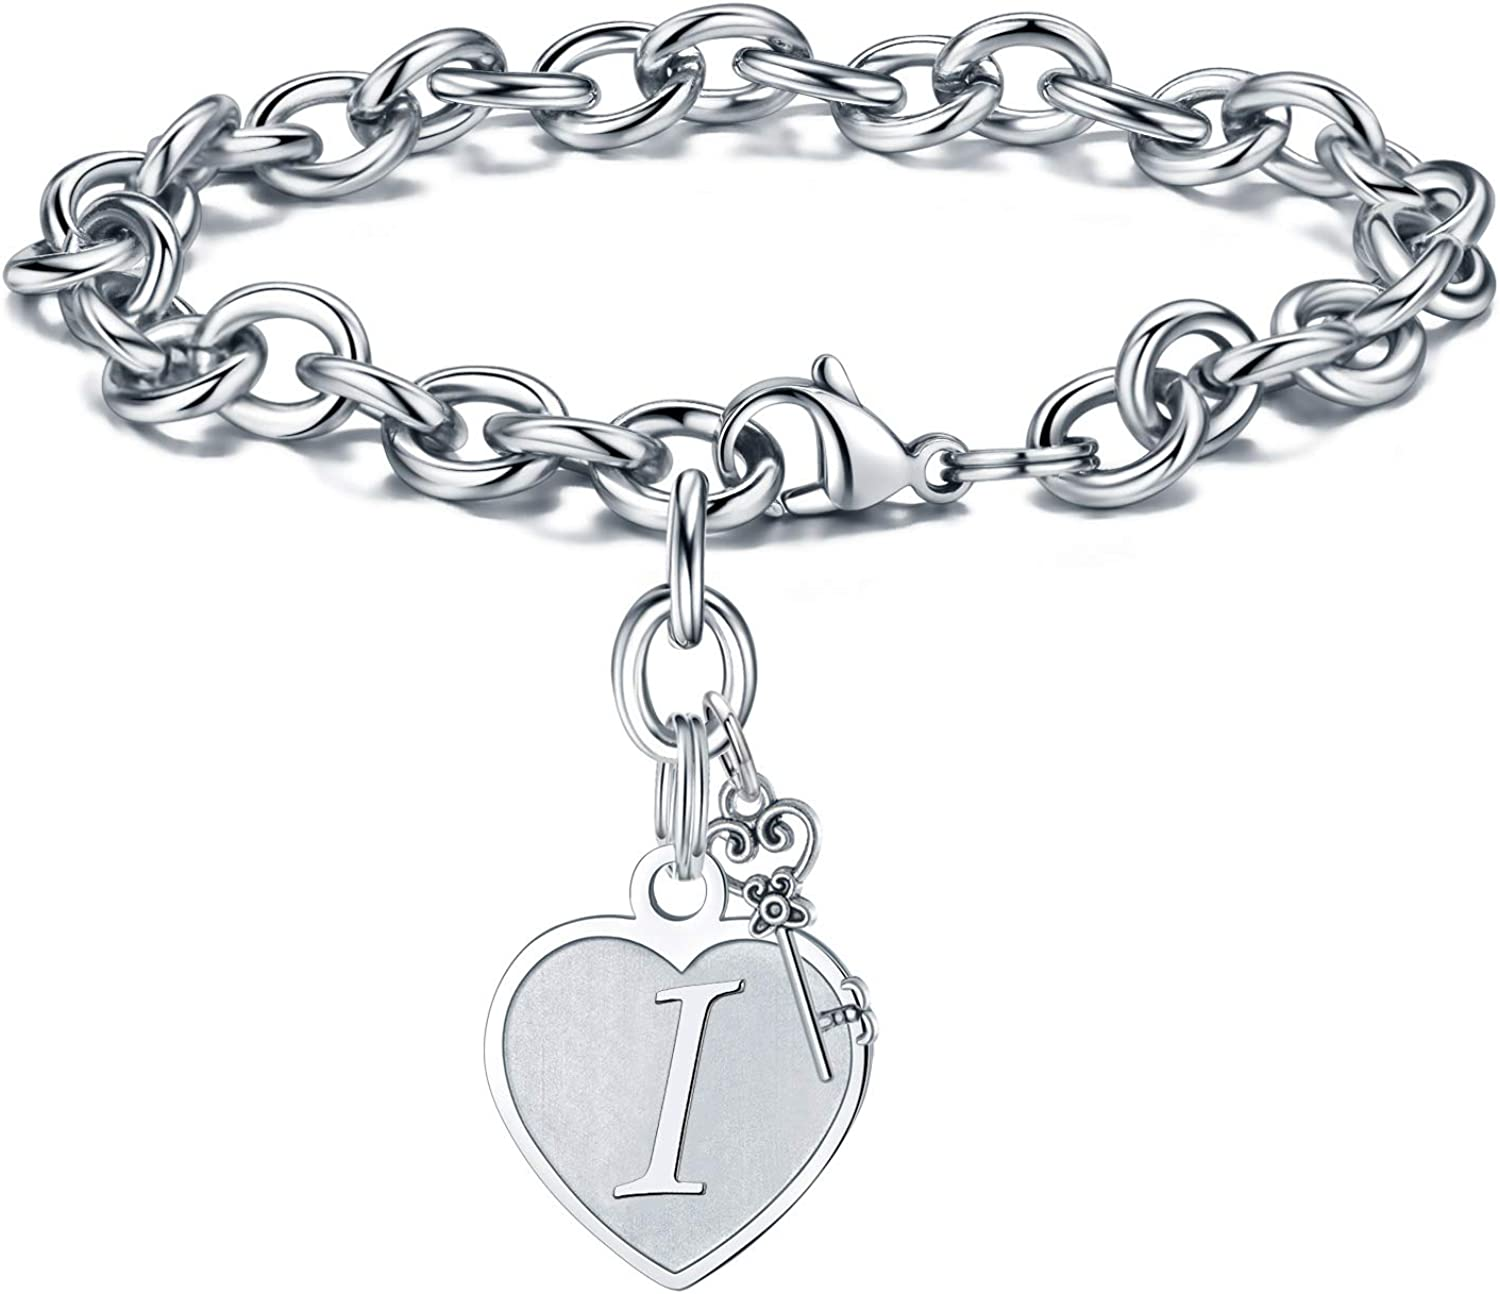 M MOOHAM Heart Initial Bracelets for Women Gifts - Engraved 26 Letters Initial Charms Bracelet Stainless Steel Bracelet Birthday Christmas Jewelry Gift for Women Teen Girls